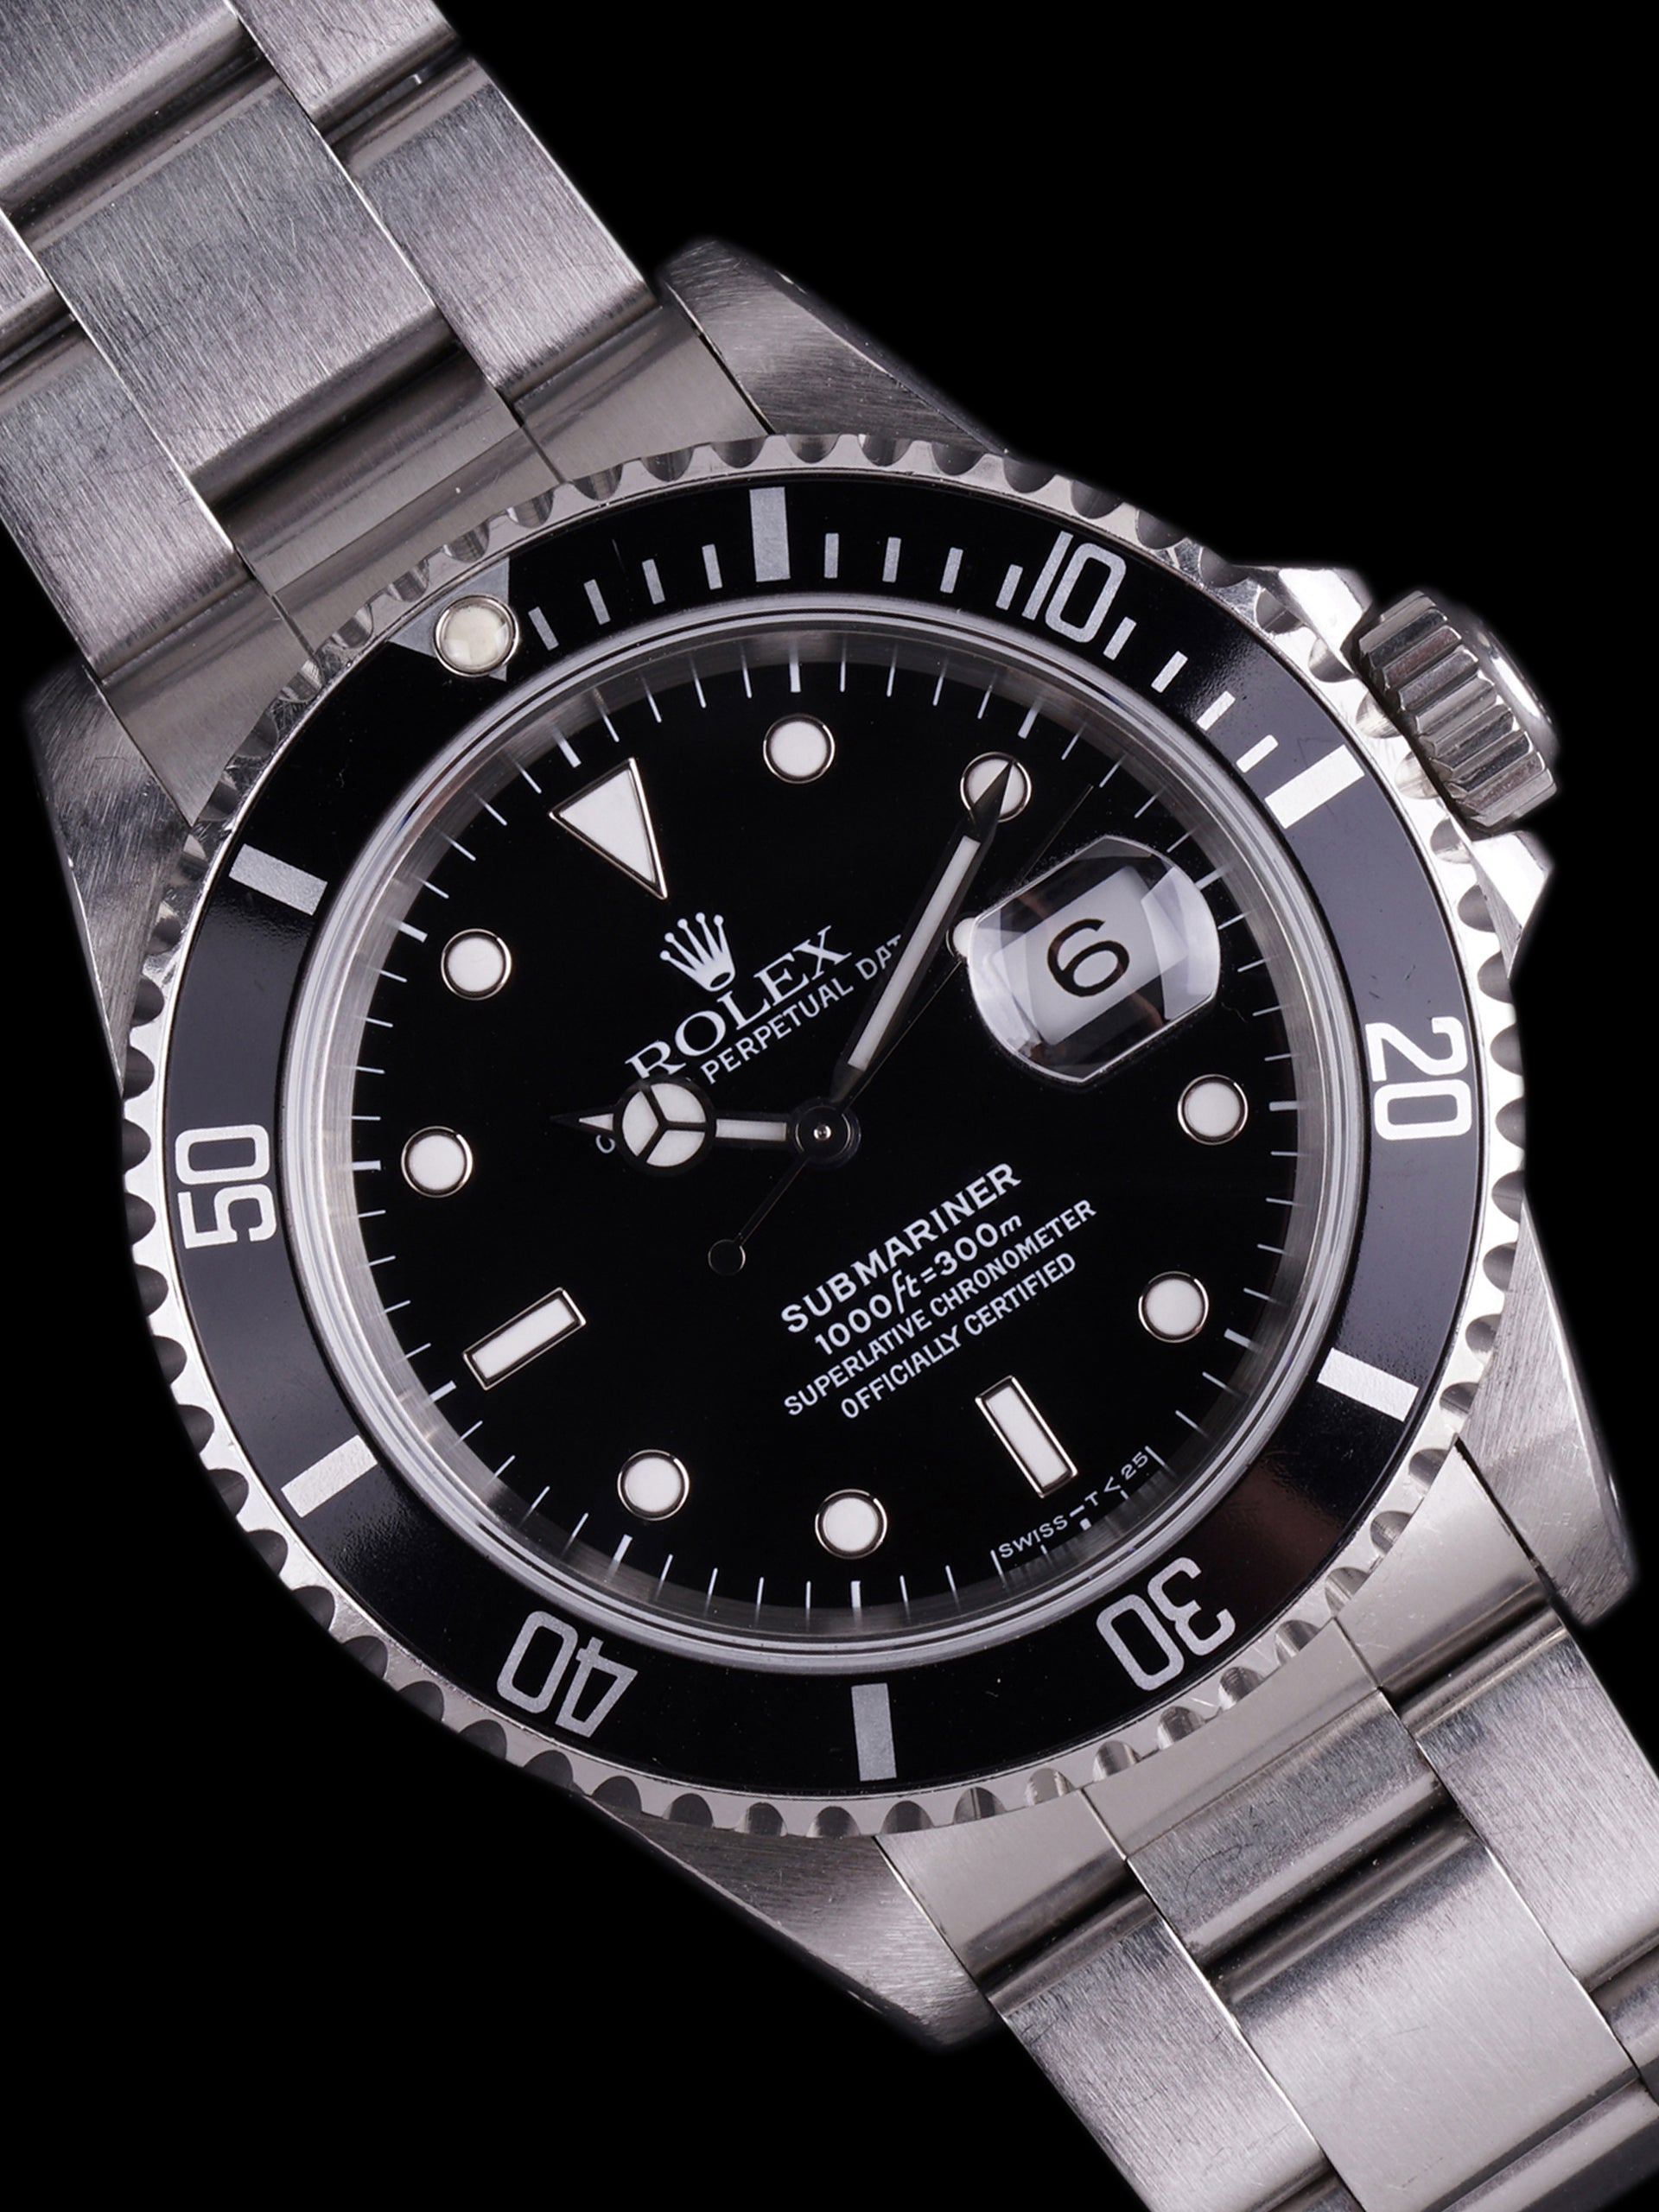 *Unpolished* 1994 Rolex Submariner (Ref. 16610)